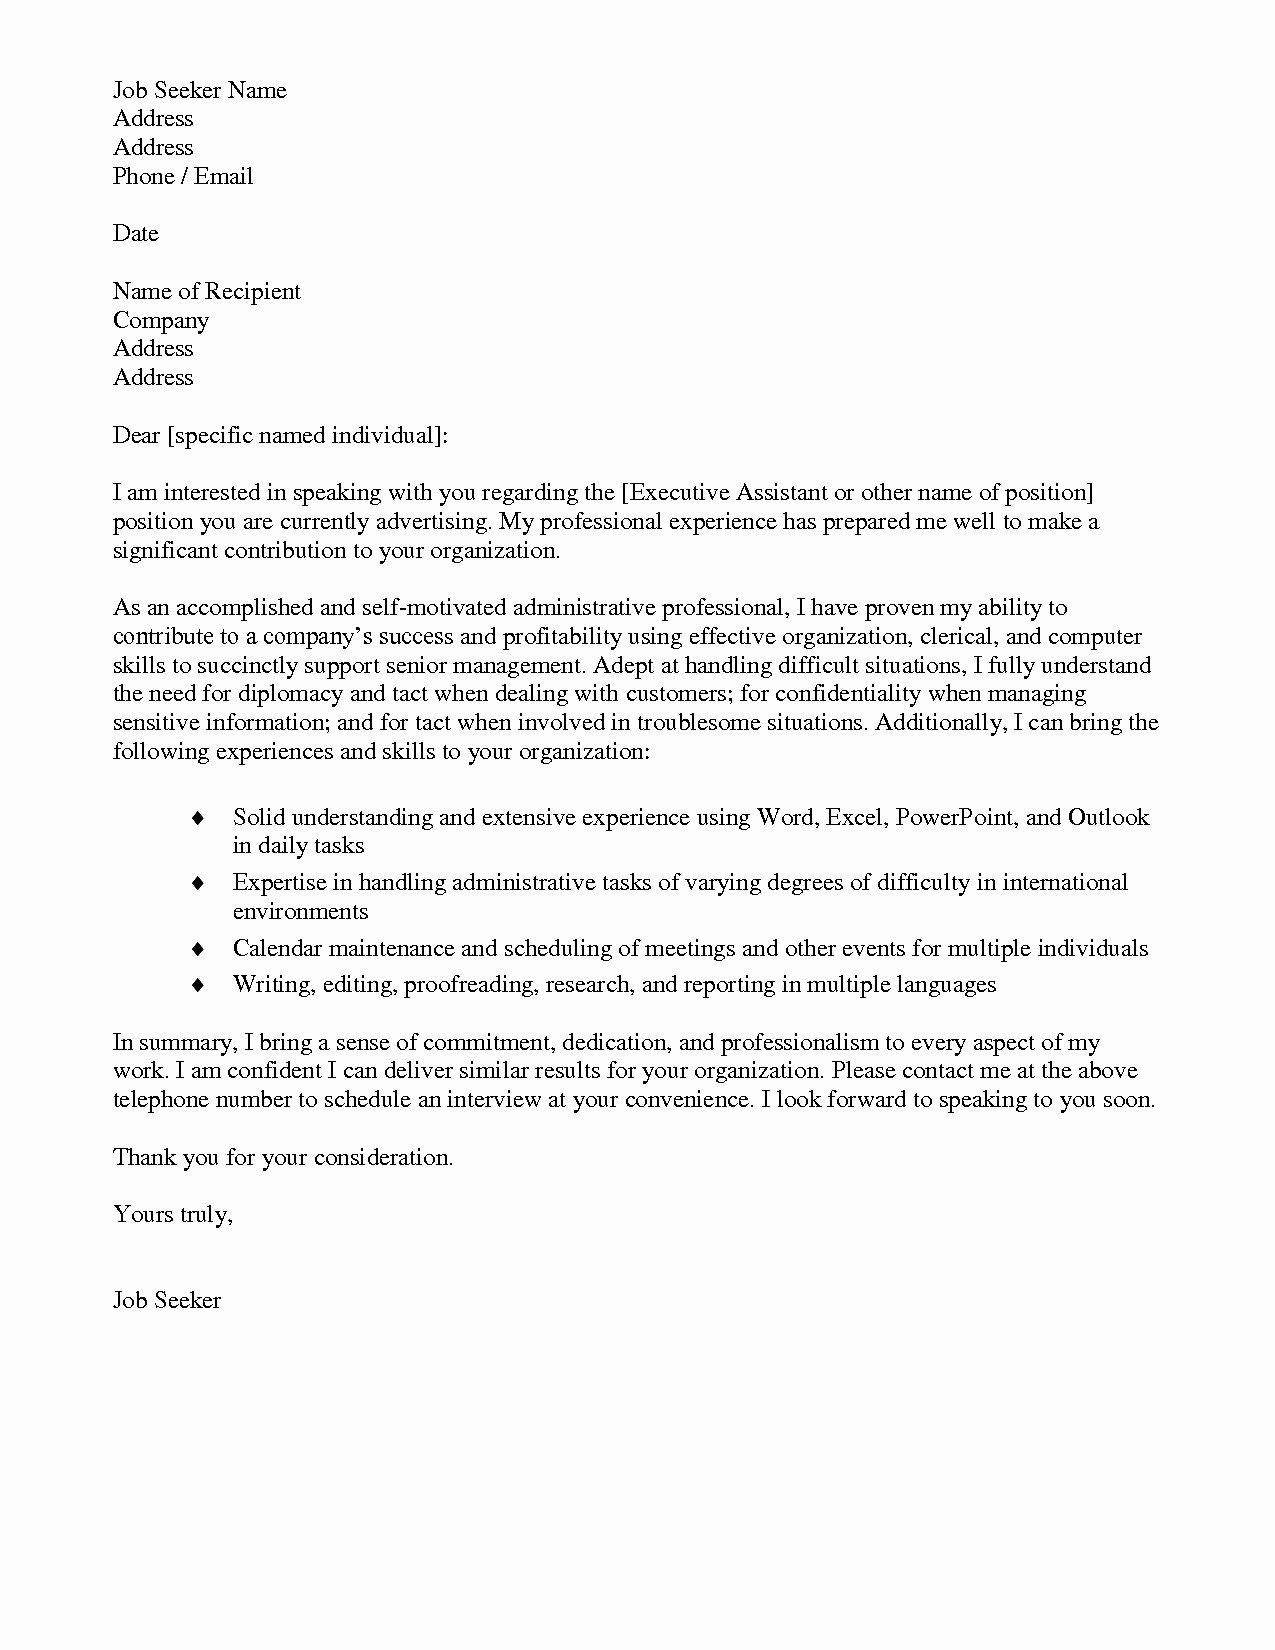 Personal assistant Cover Letter Awesome 12 13 Personal assistant Cover Letter Samples